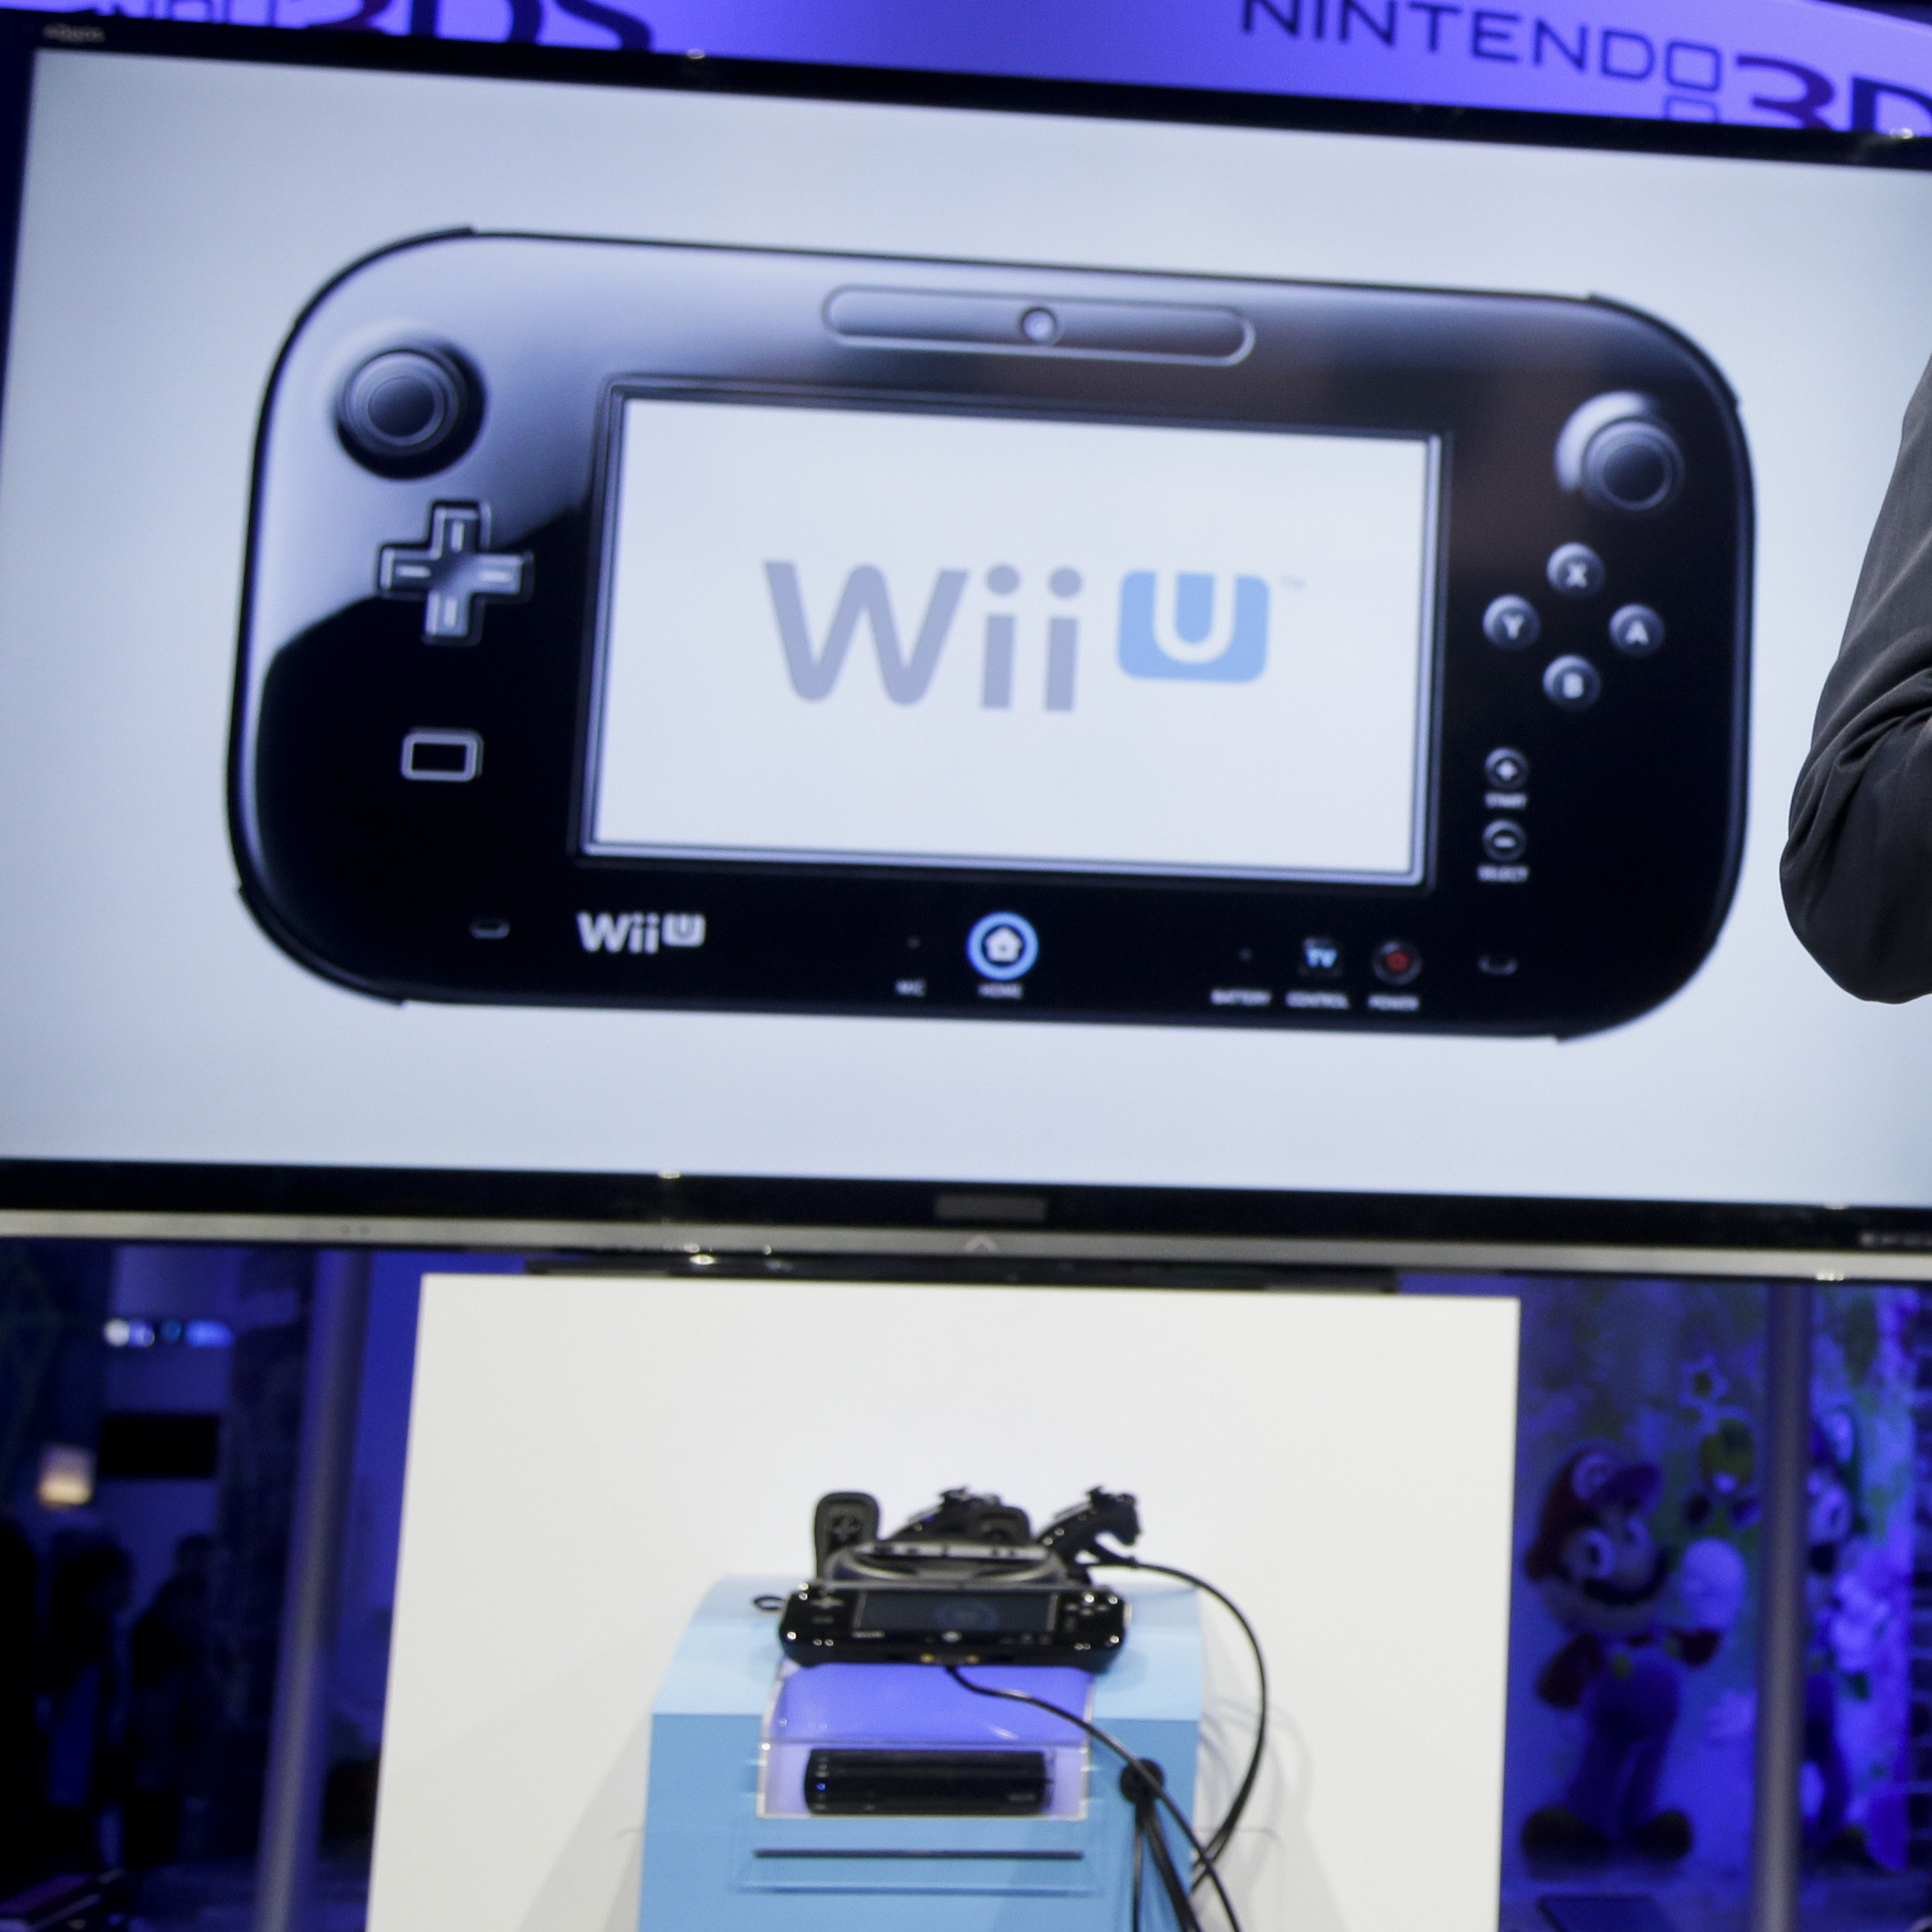 Nintendo's next-generation console, the Wii U, has been available since November. So far, it has sold 3.45 million units.